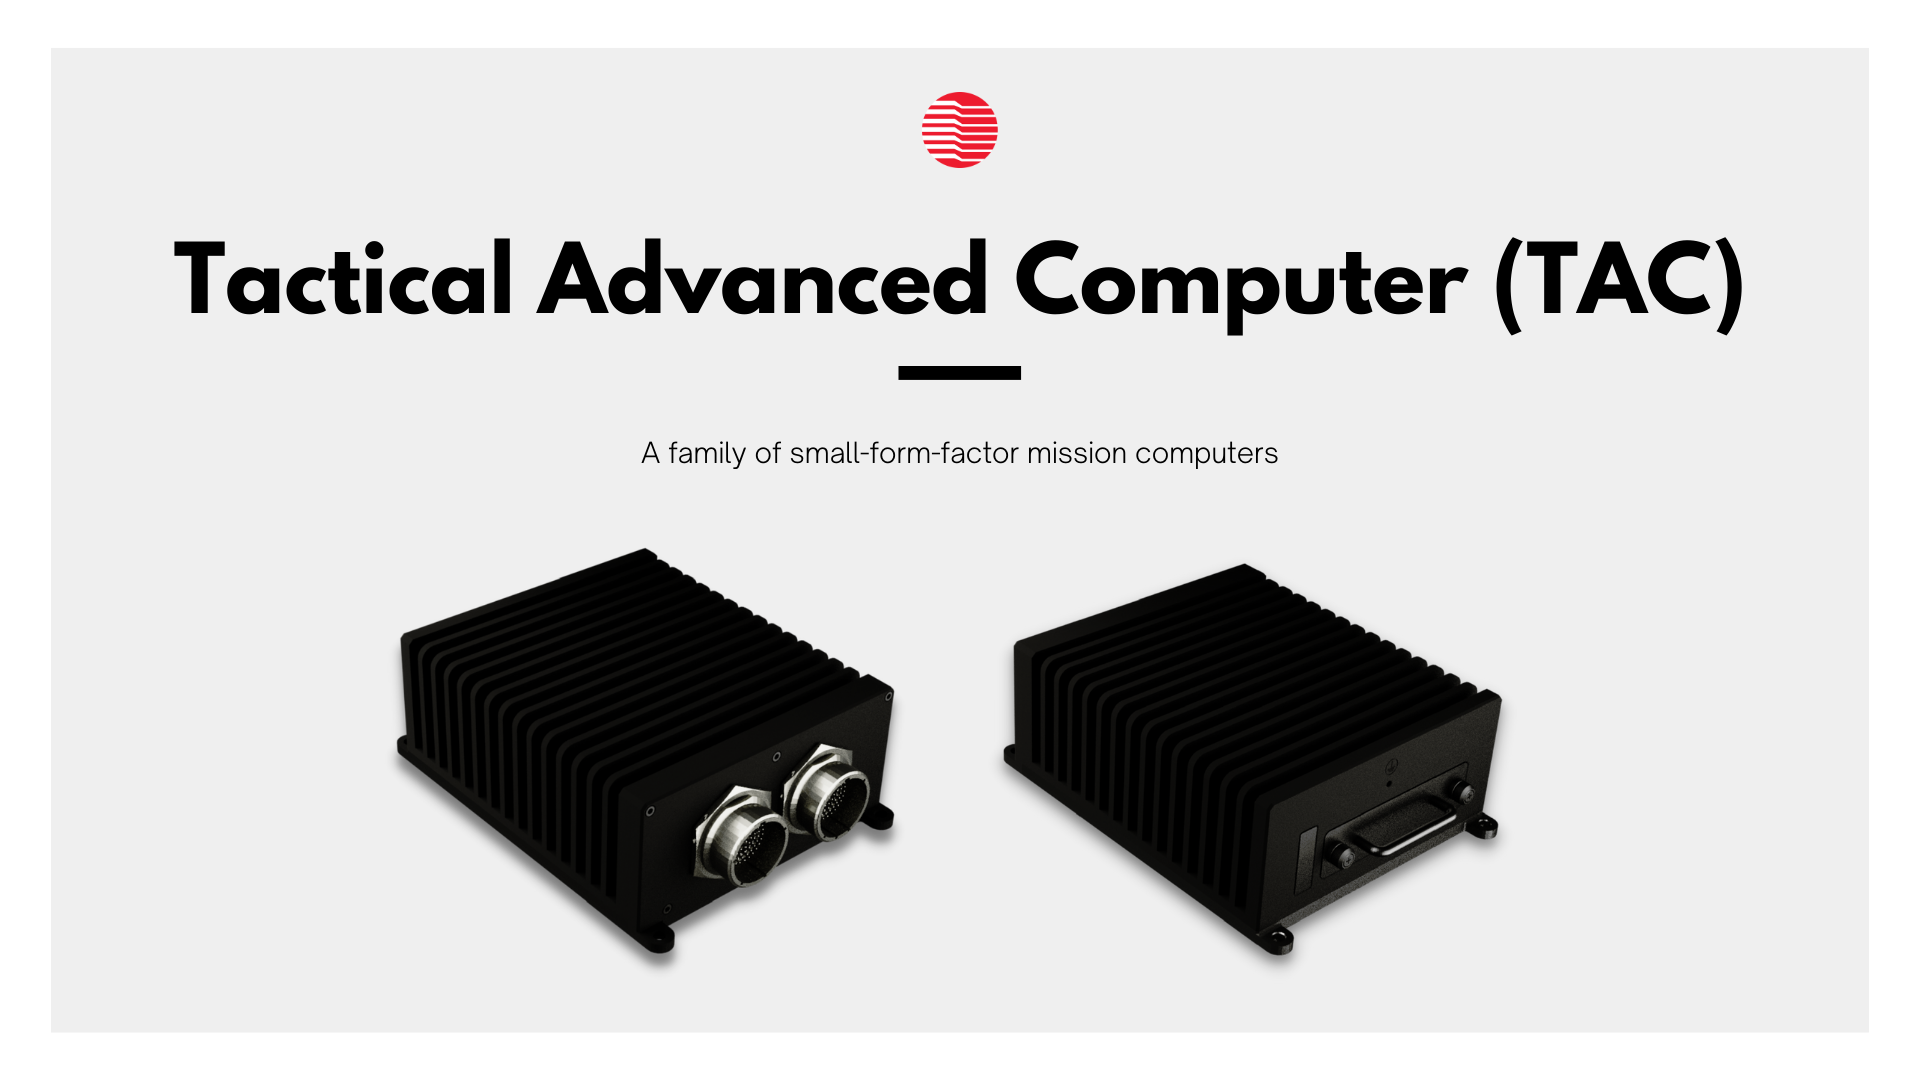 Preliminary renderings of the Tactical Advanced Computer (TAC) family